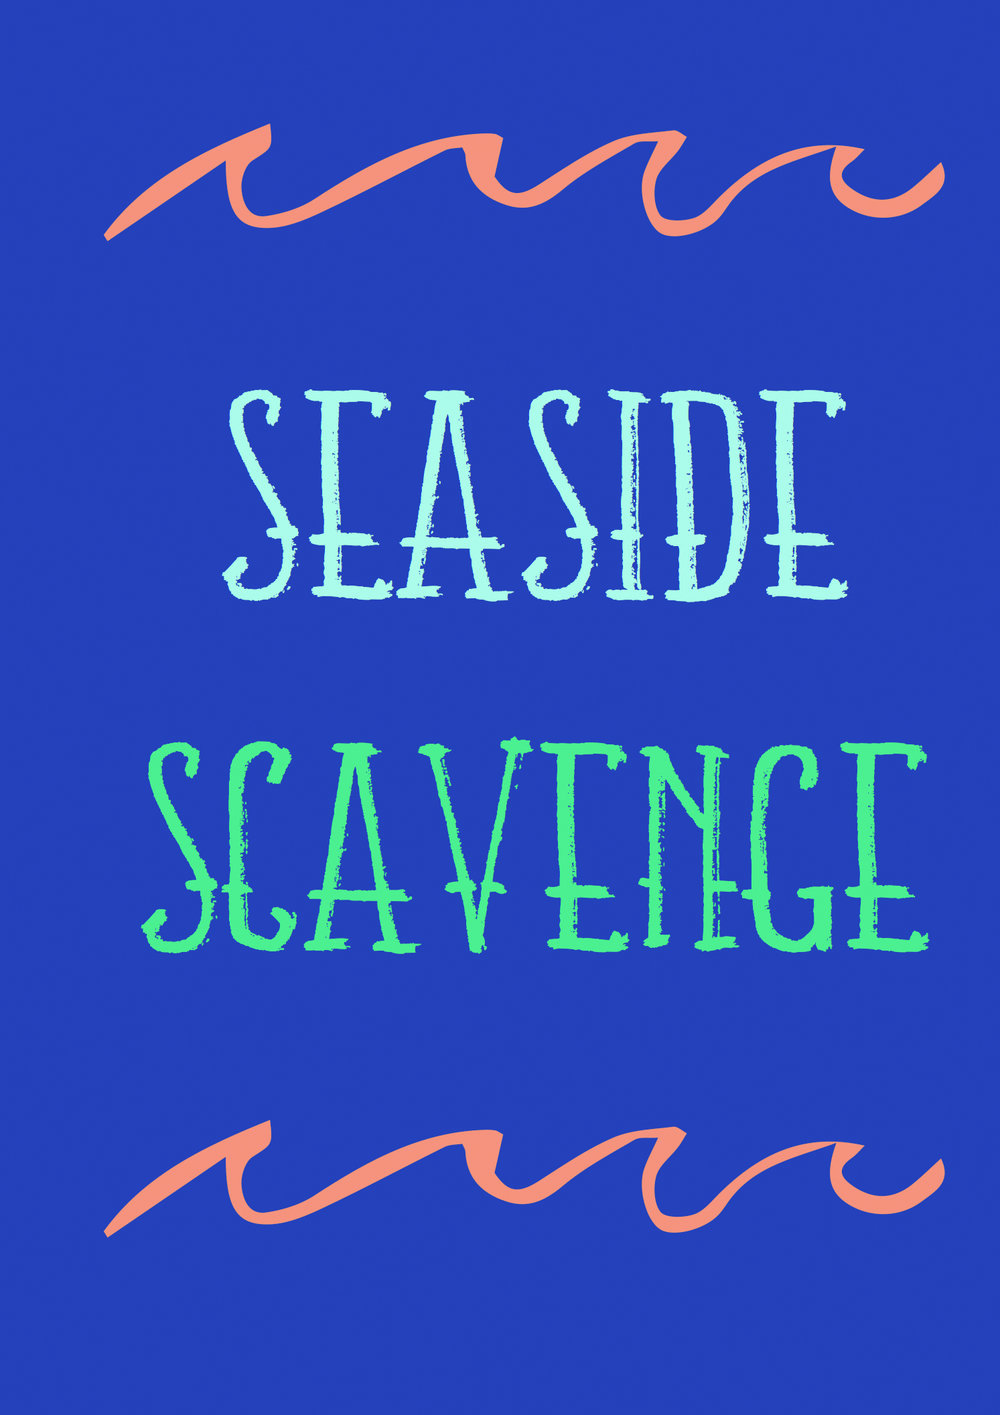 Seaside Scavenge Logo.jpg